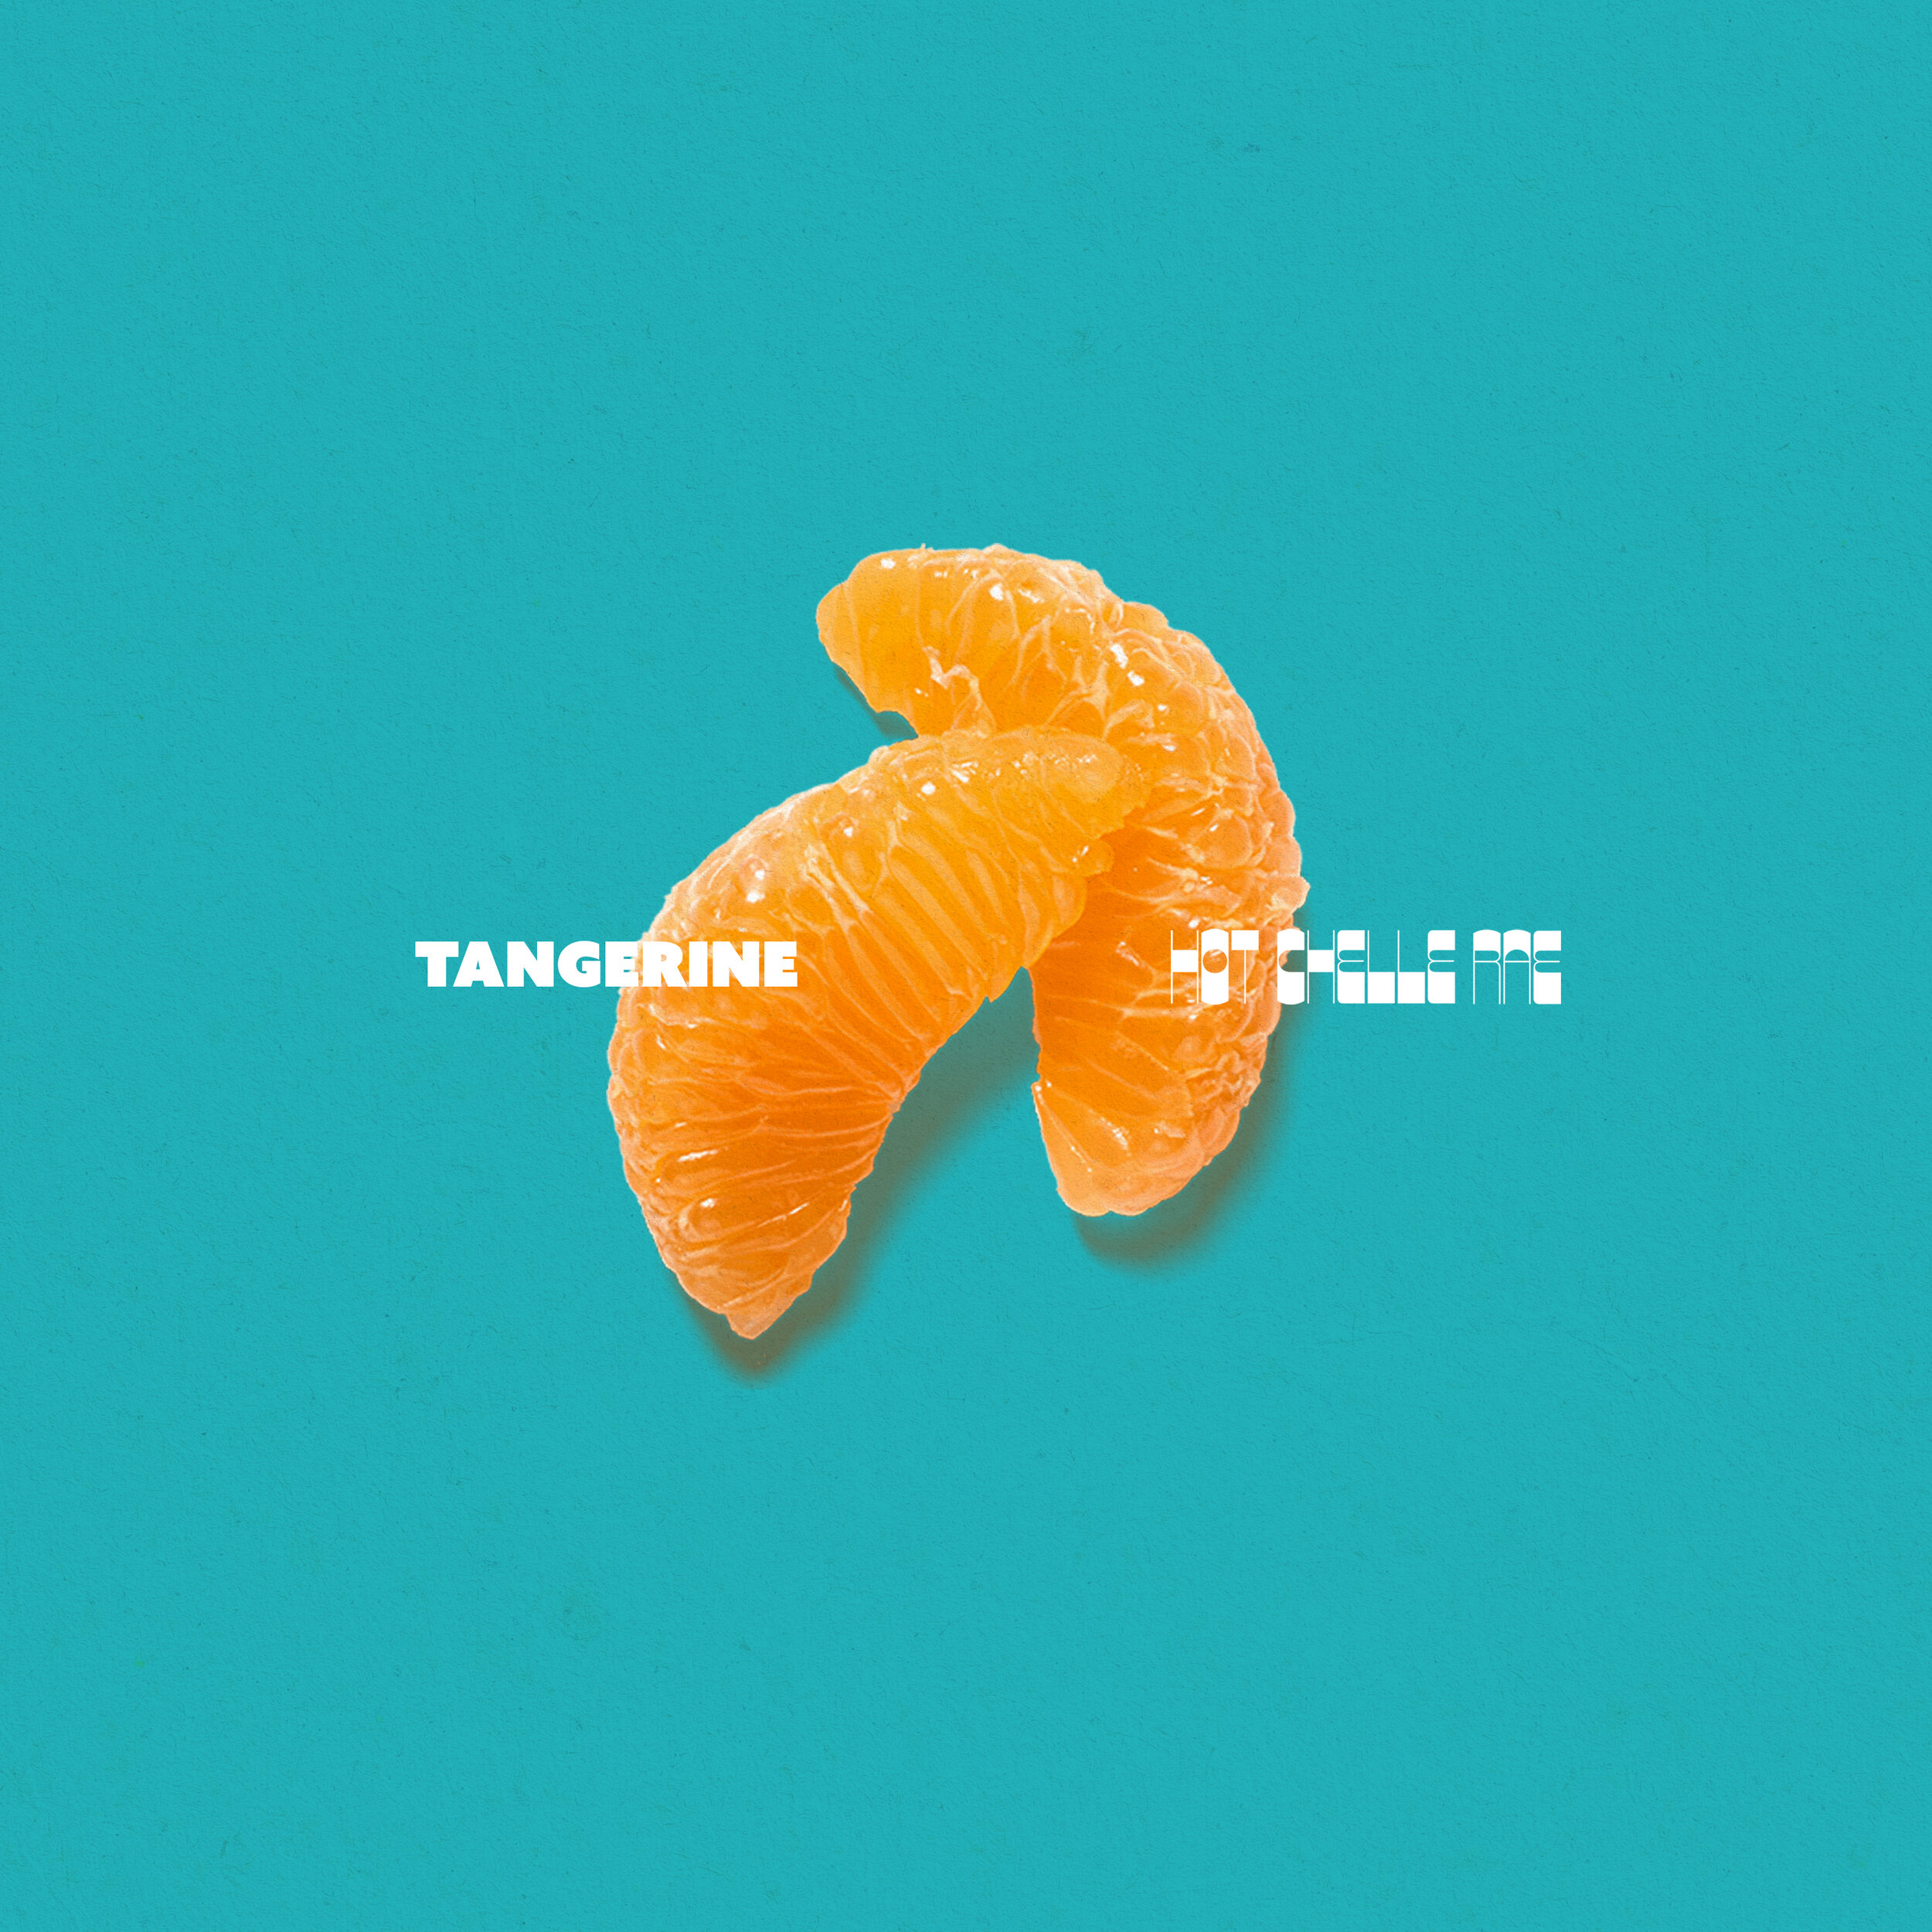 Image result for hot chelle rae tangerine